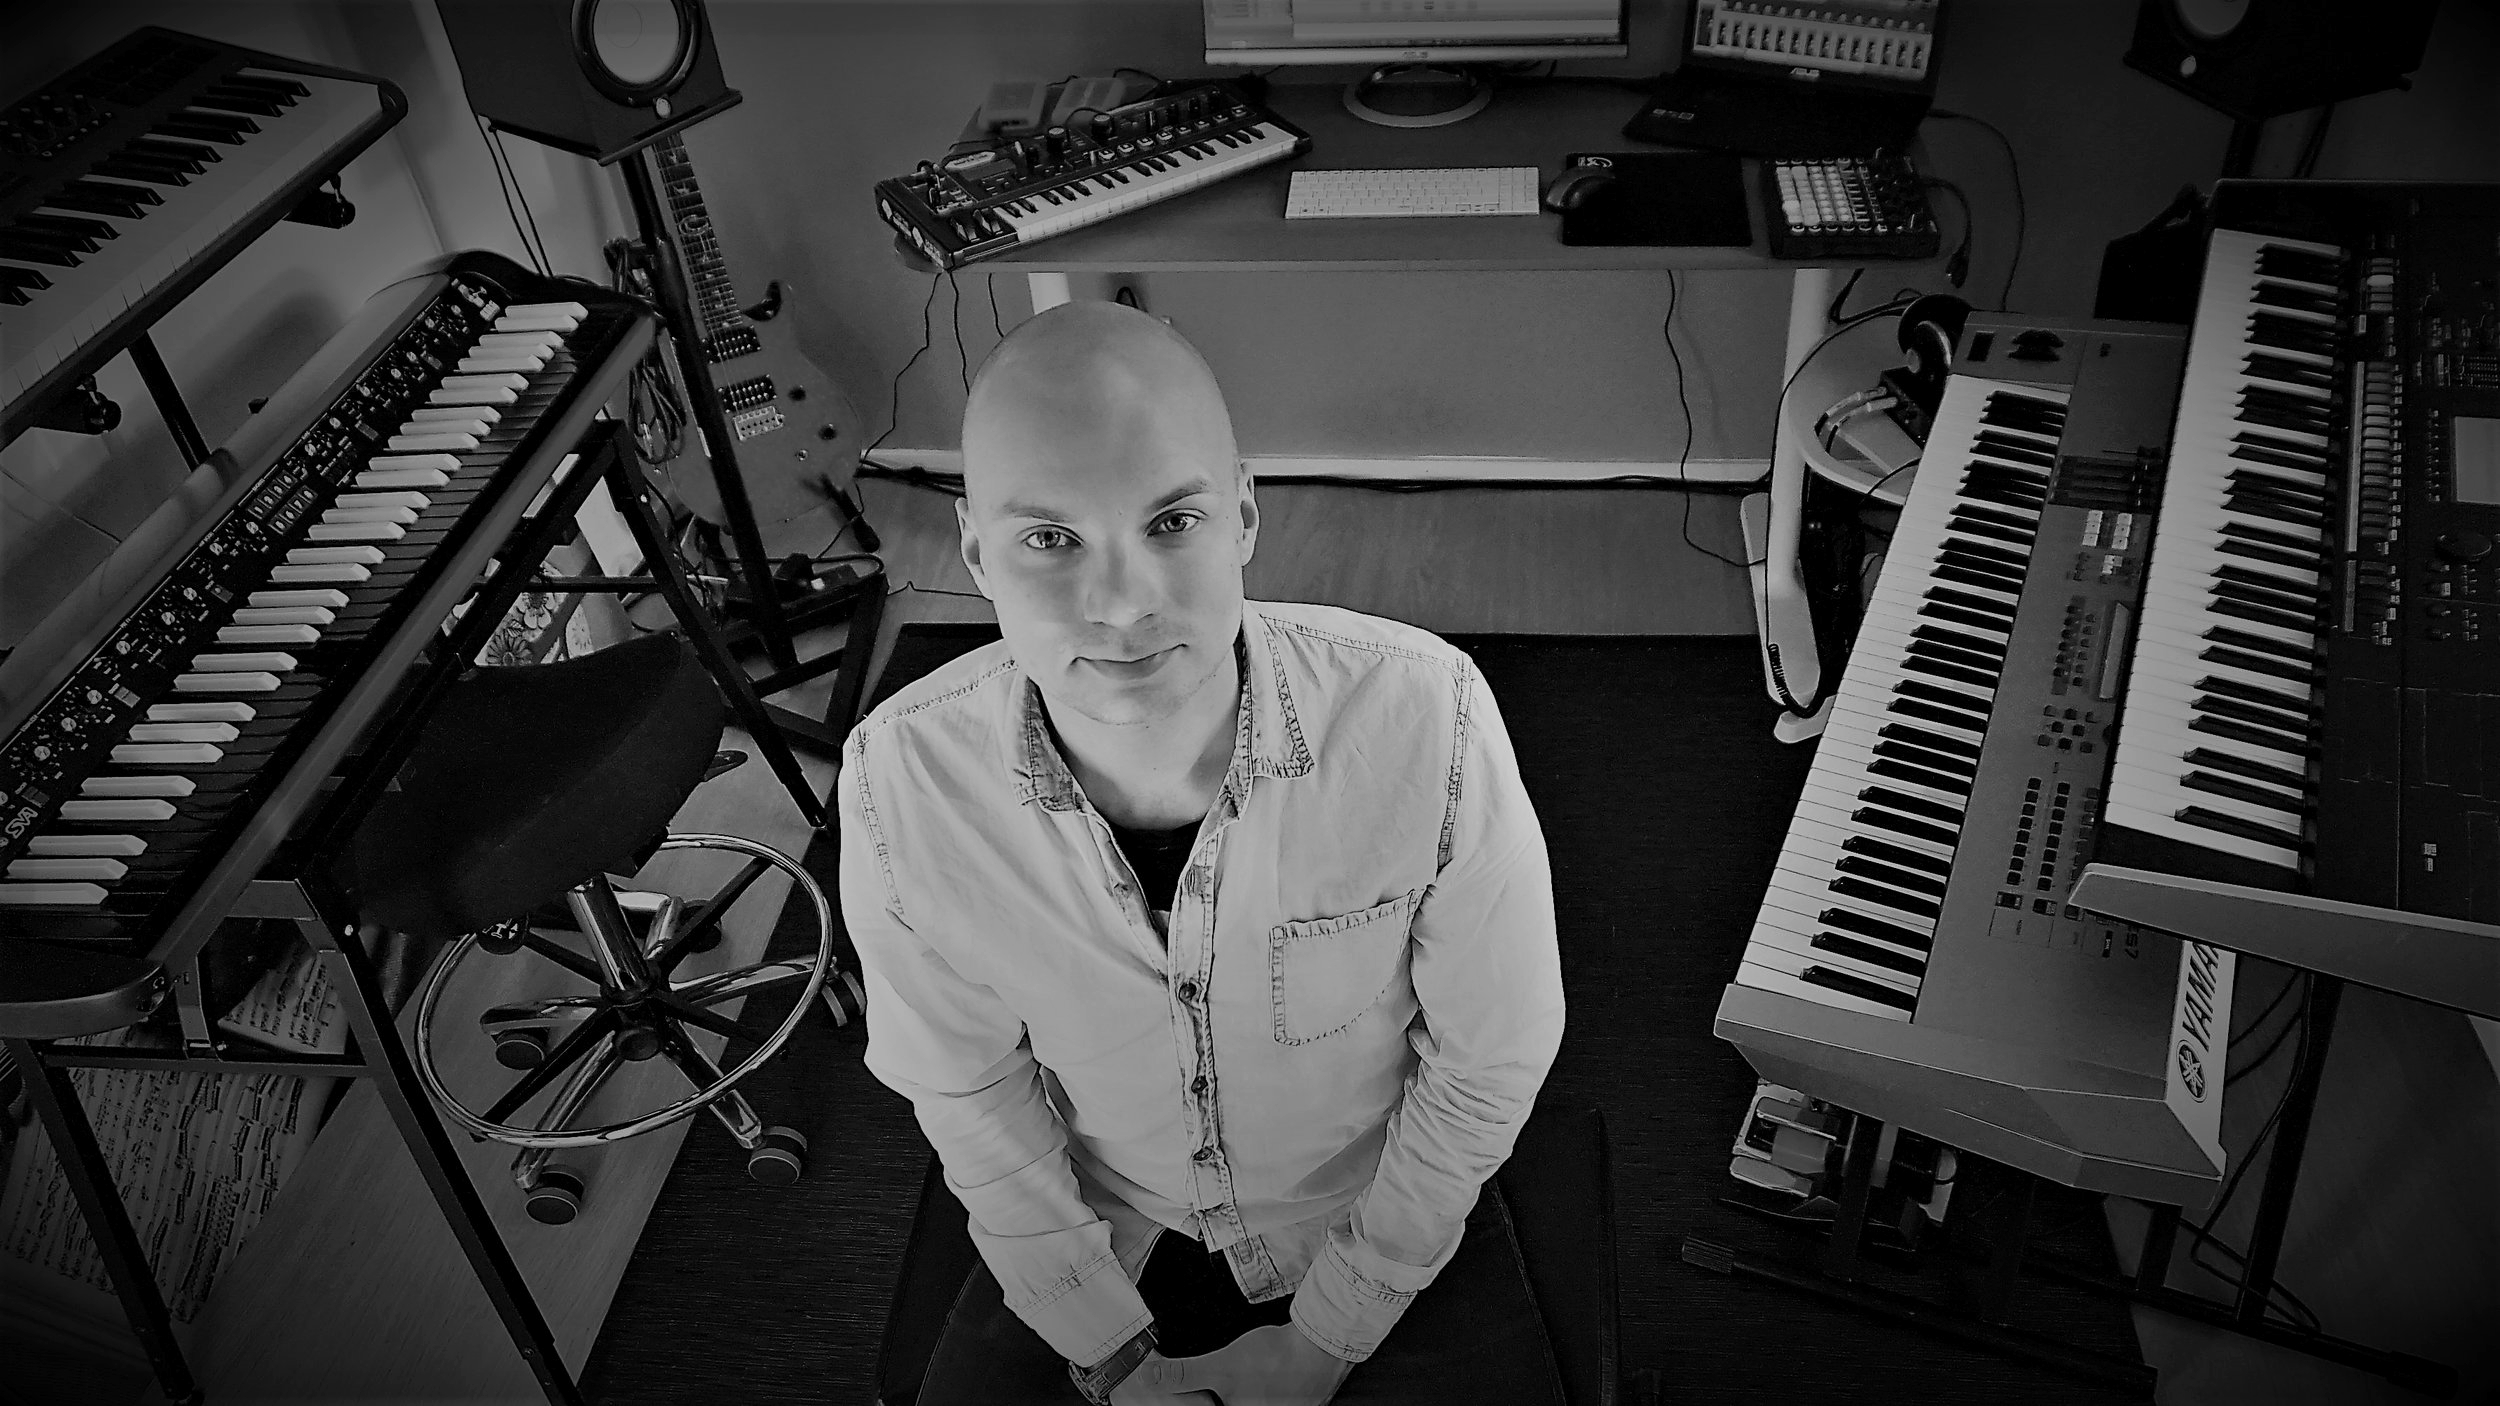 I'M A COMPOSER/MUSICIAN/PRODUCER FROM FINLAND. I HAVE EXPERIENCE OF COMPOSING FOR TV, COMMERCIALS AND OTHER MEDIA. I ALSO COMPOSE FOR BANDS. I'M A KEYBOARDIST IN VARIOUS BANDS AND I ALSO WORK AS A FREELANCE MUSICIAN. SEE MORE FROM MY      CV